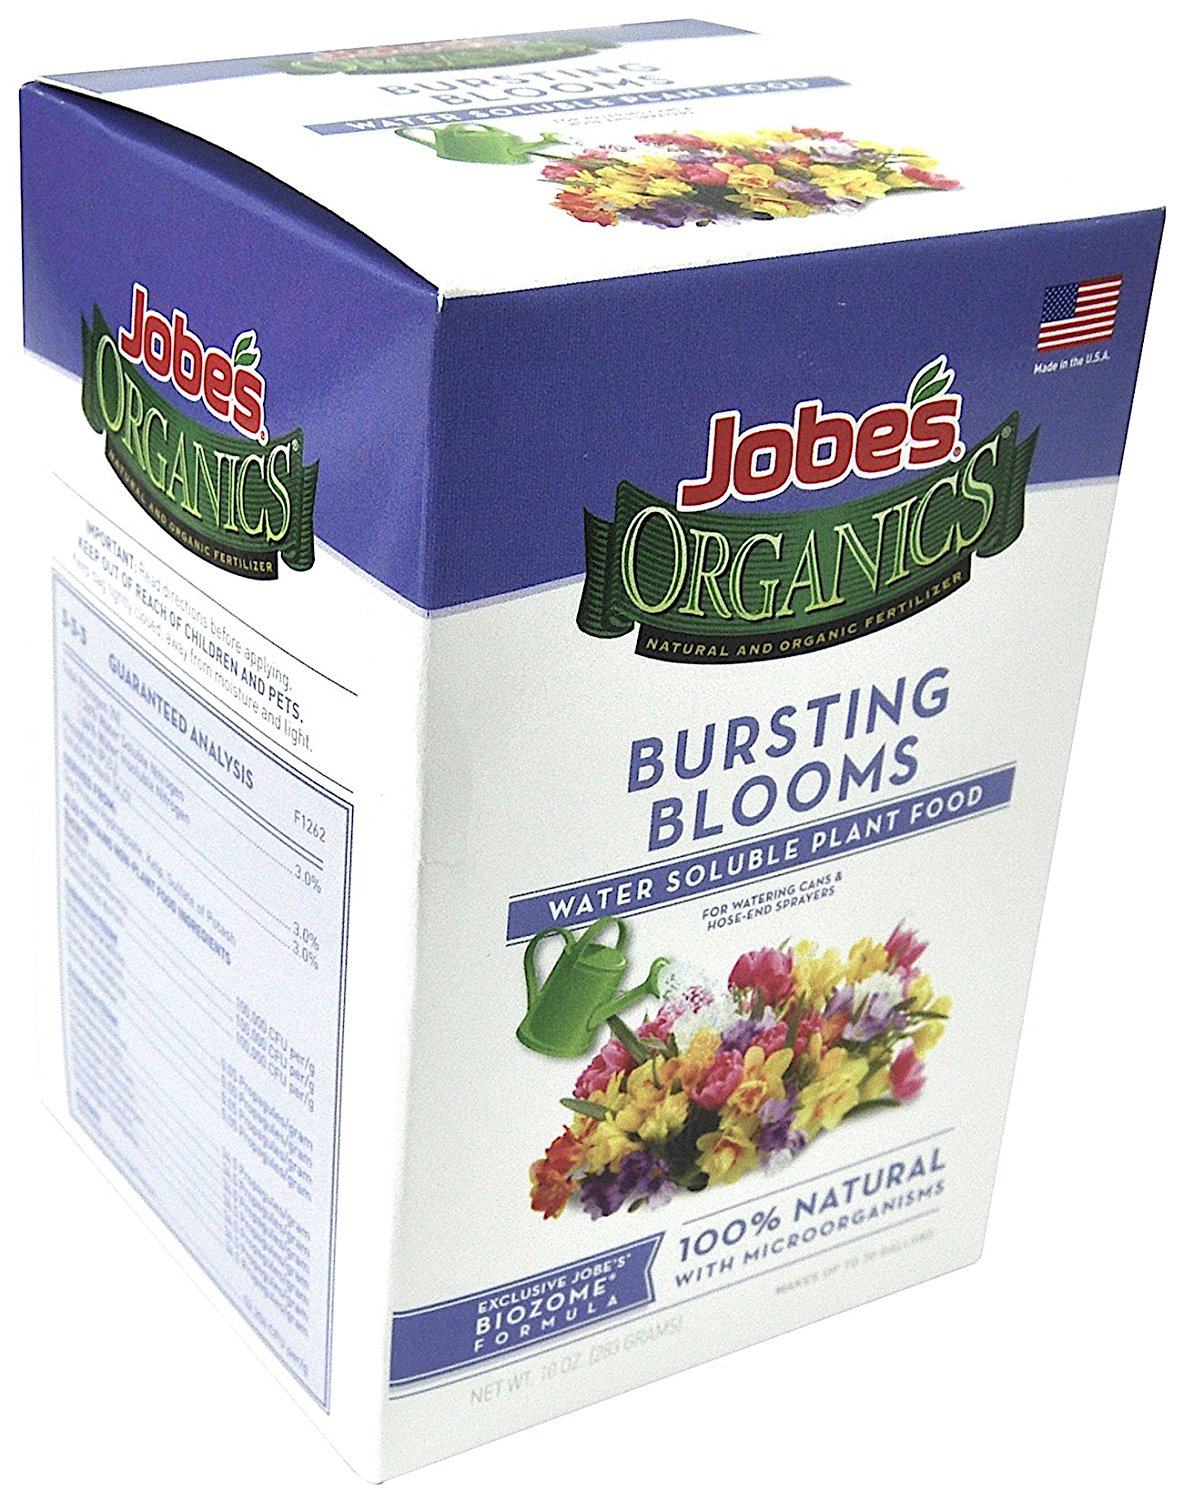 Jobe's Organics Bursting Blooms Fertilizer with Biozome 3-3-3 Water Soluble Plant Food Mix for All Flowering Plants, 10 oz Box Makes 30 Gallons of Organic Liquid Fertilizer